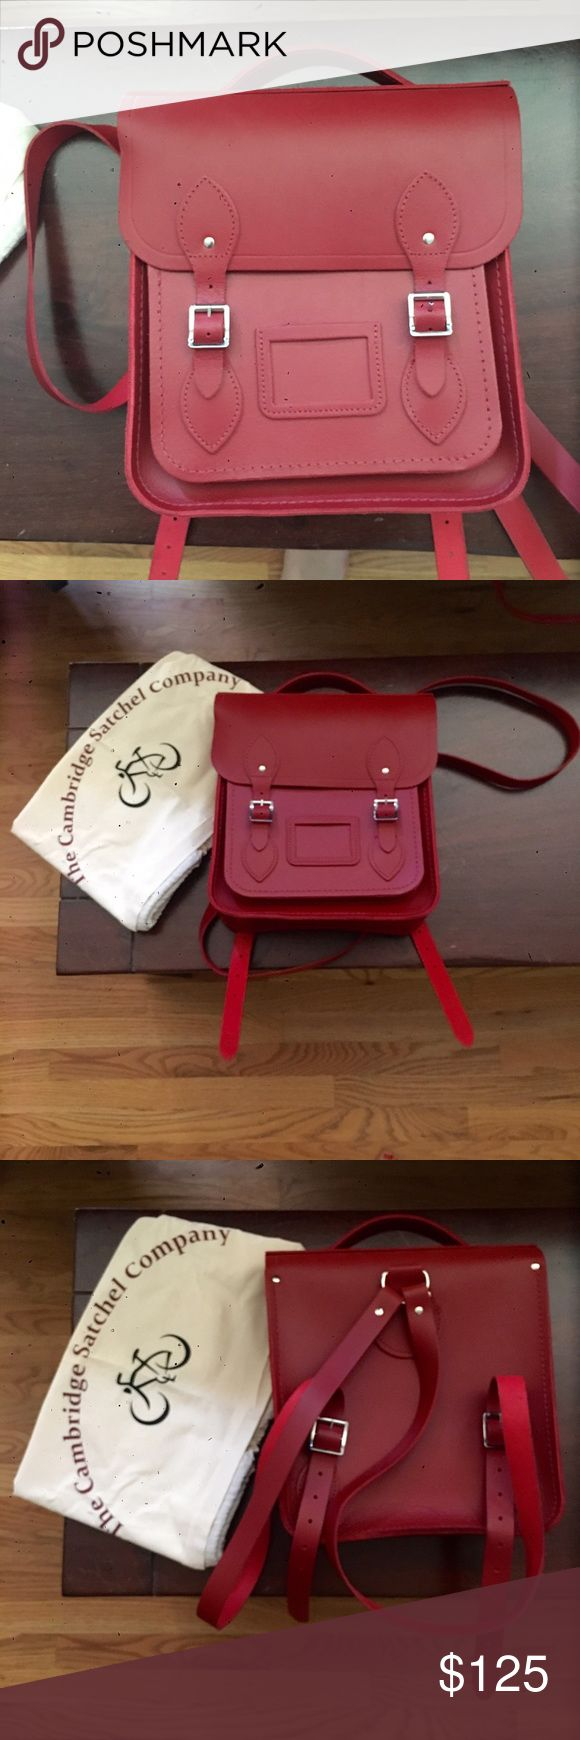 ON SALE!Cambridge Satchel Small Red Backpack NWOT Small backpack, enough to hold iPad mini, wallet and makeup. Great pop to any outfit!!!!Height: 10.75in / 27cm Length: 11in / 28cm Depth: 3.25in / 8cm Cambridge Satchel Bags Backpacks